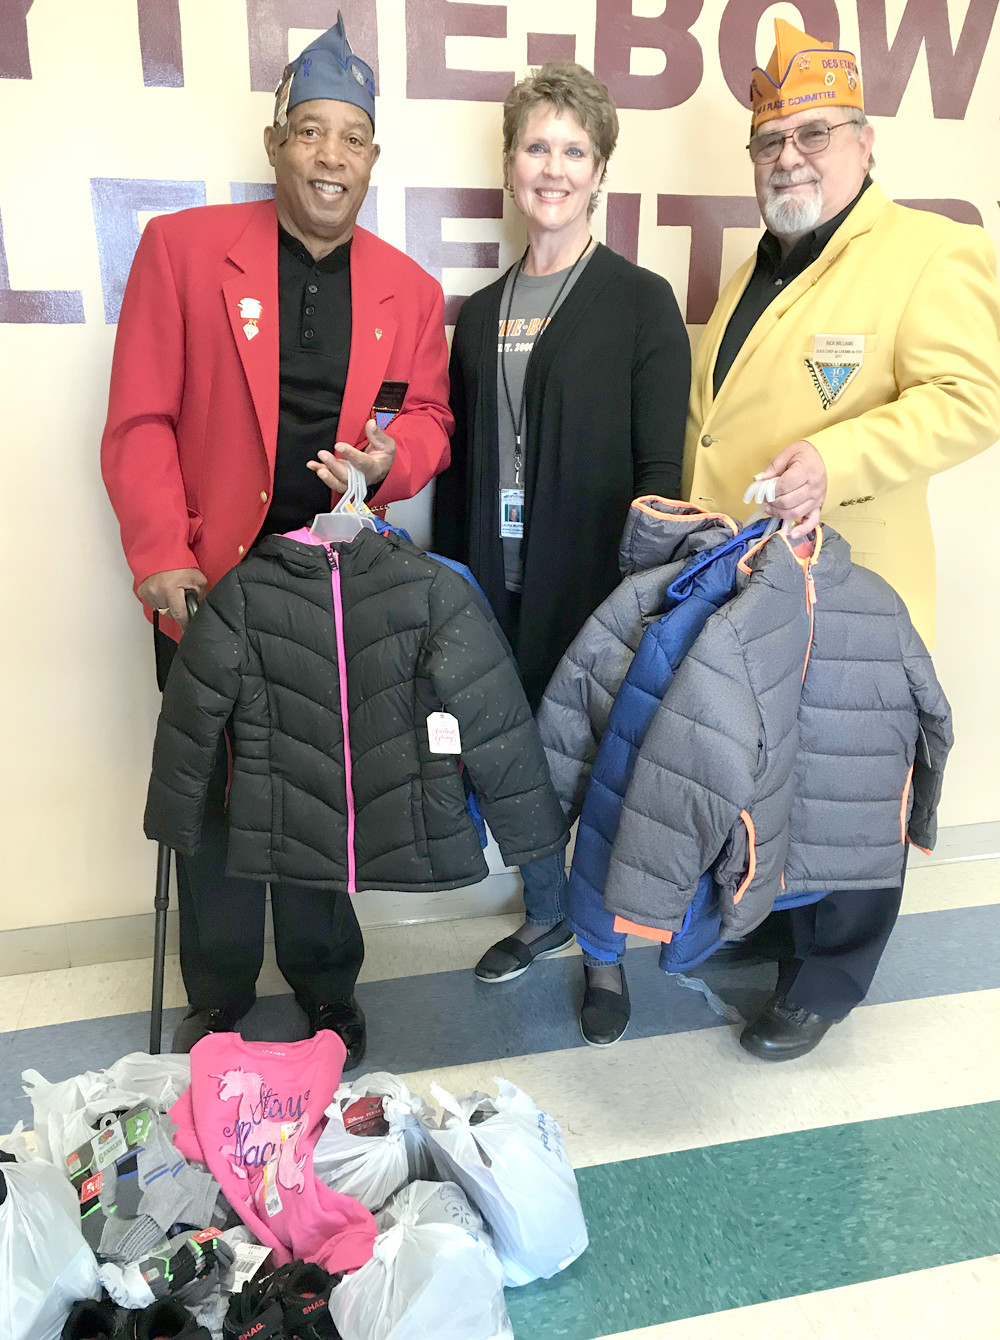 THE 40&8 SOCIETY recently donated coats and shoes to students at Blythe-Bower Elementary School. Pictured are 40&8 representatives Oscar Kelley and Rick Williams, along with Linda Tyler, family engagement coordinator at Blythe-Bower.